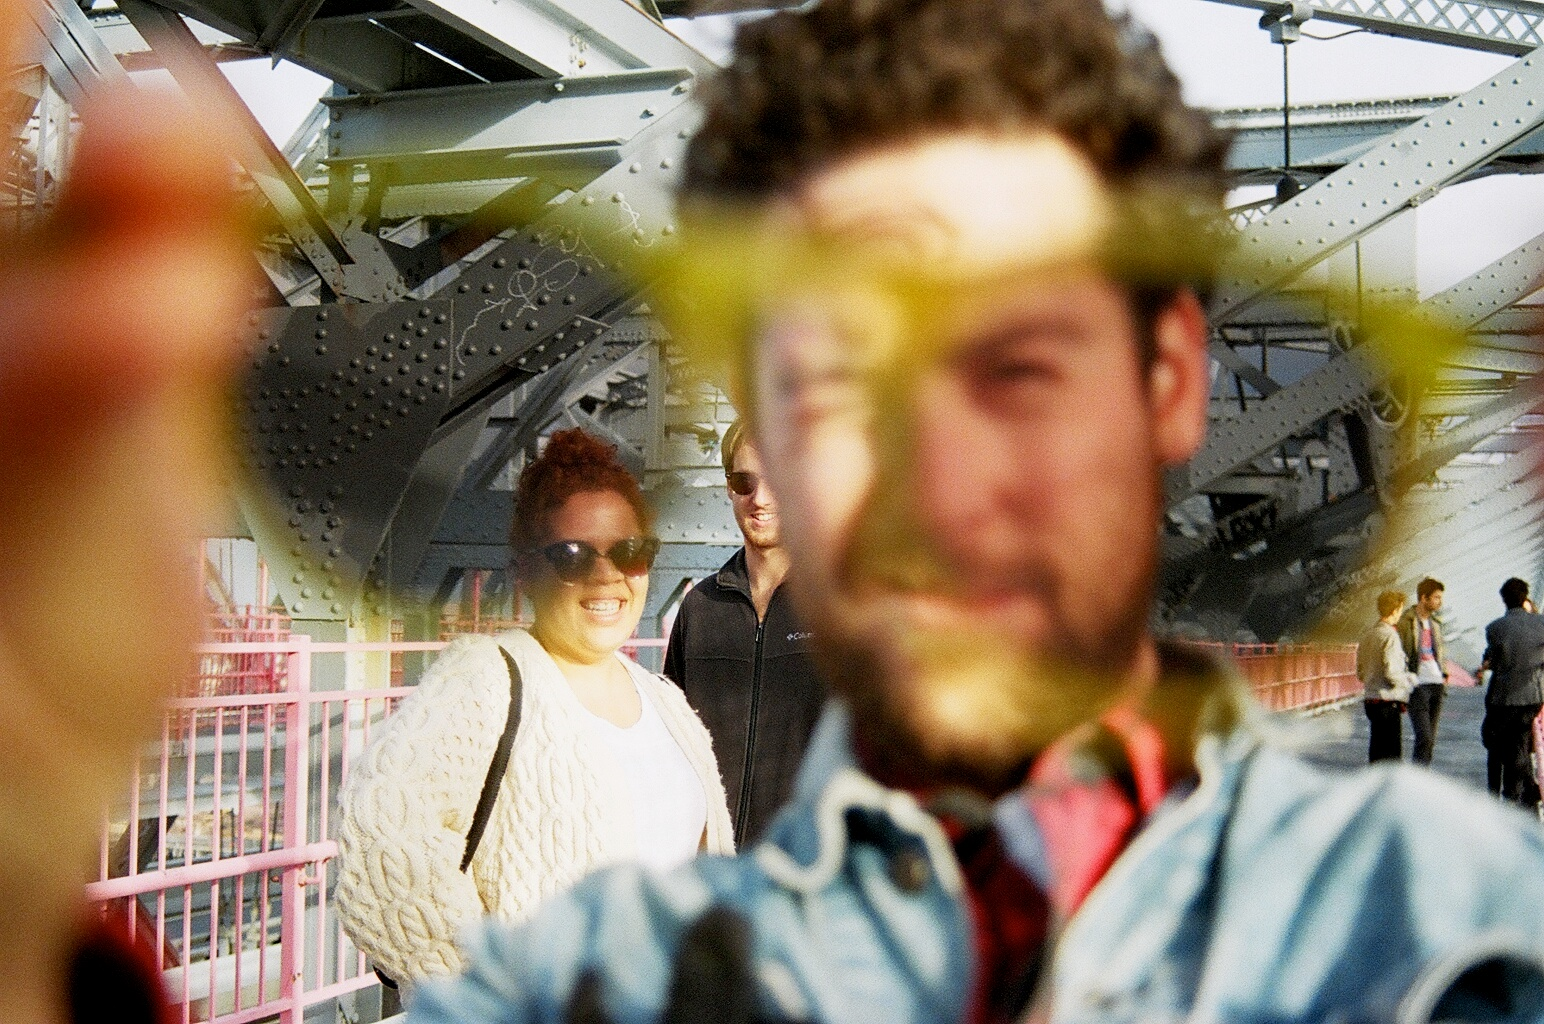 Weaves on the Williamsburg Bridge during CMJ withCalvin Love and crew in the background